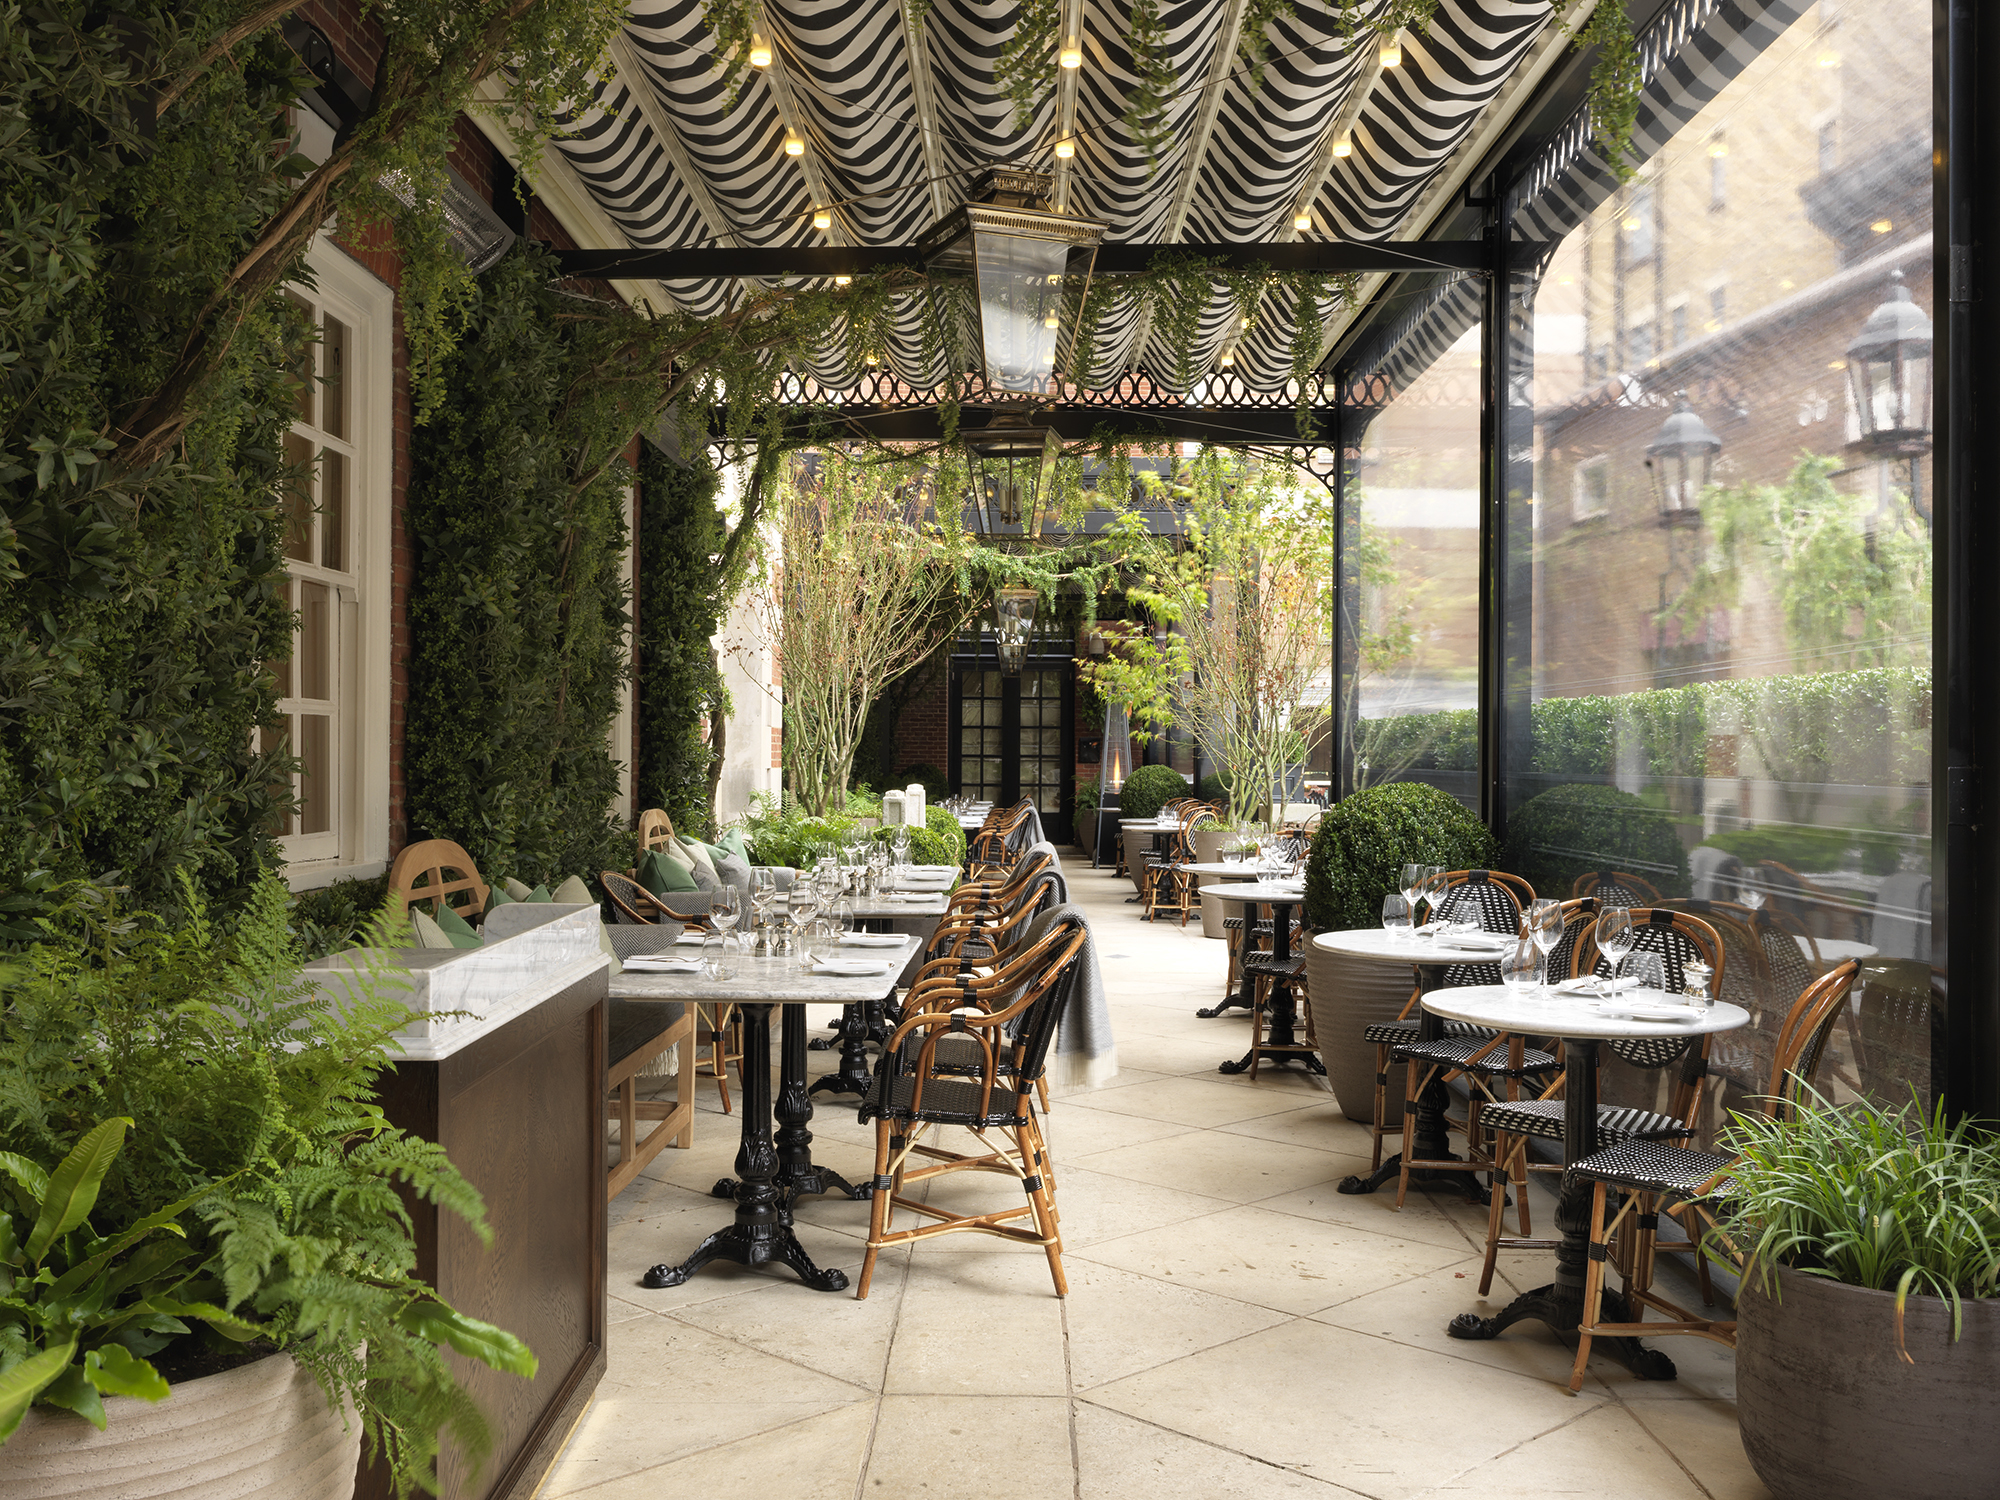 The Dalloway Terrace